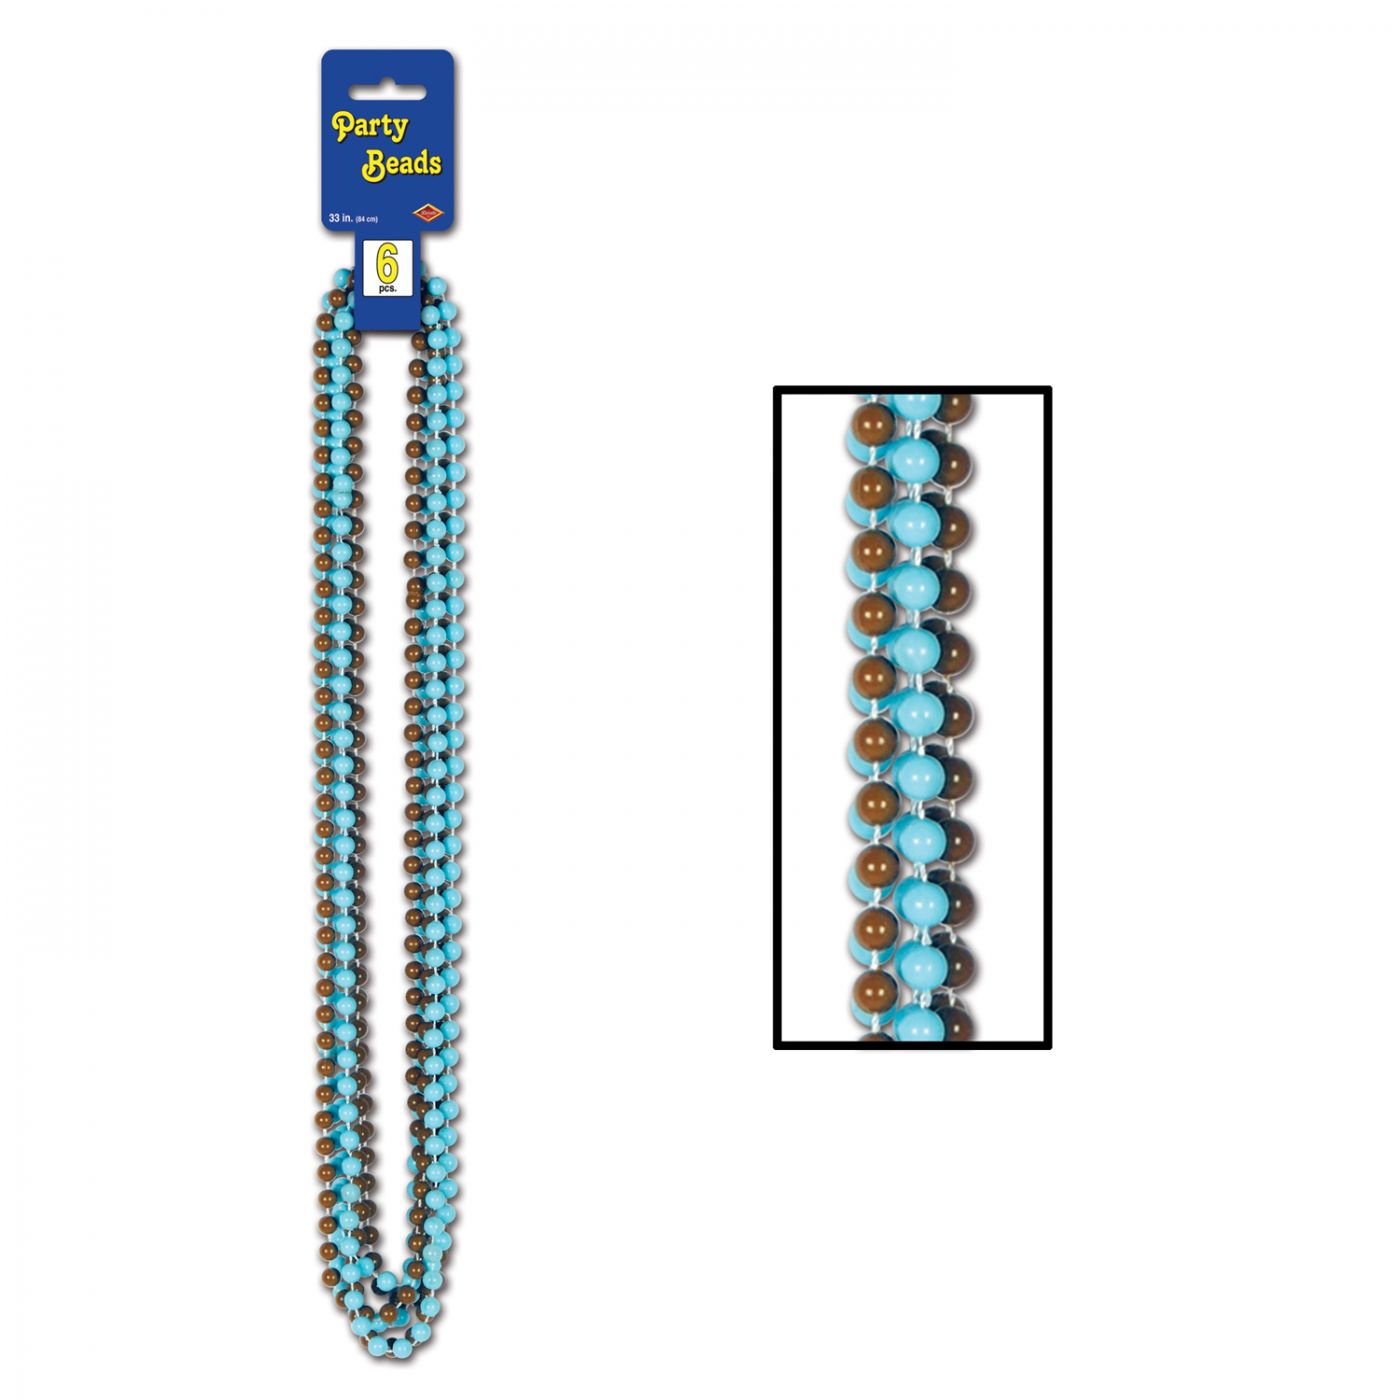 Party Beads - Small Round image